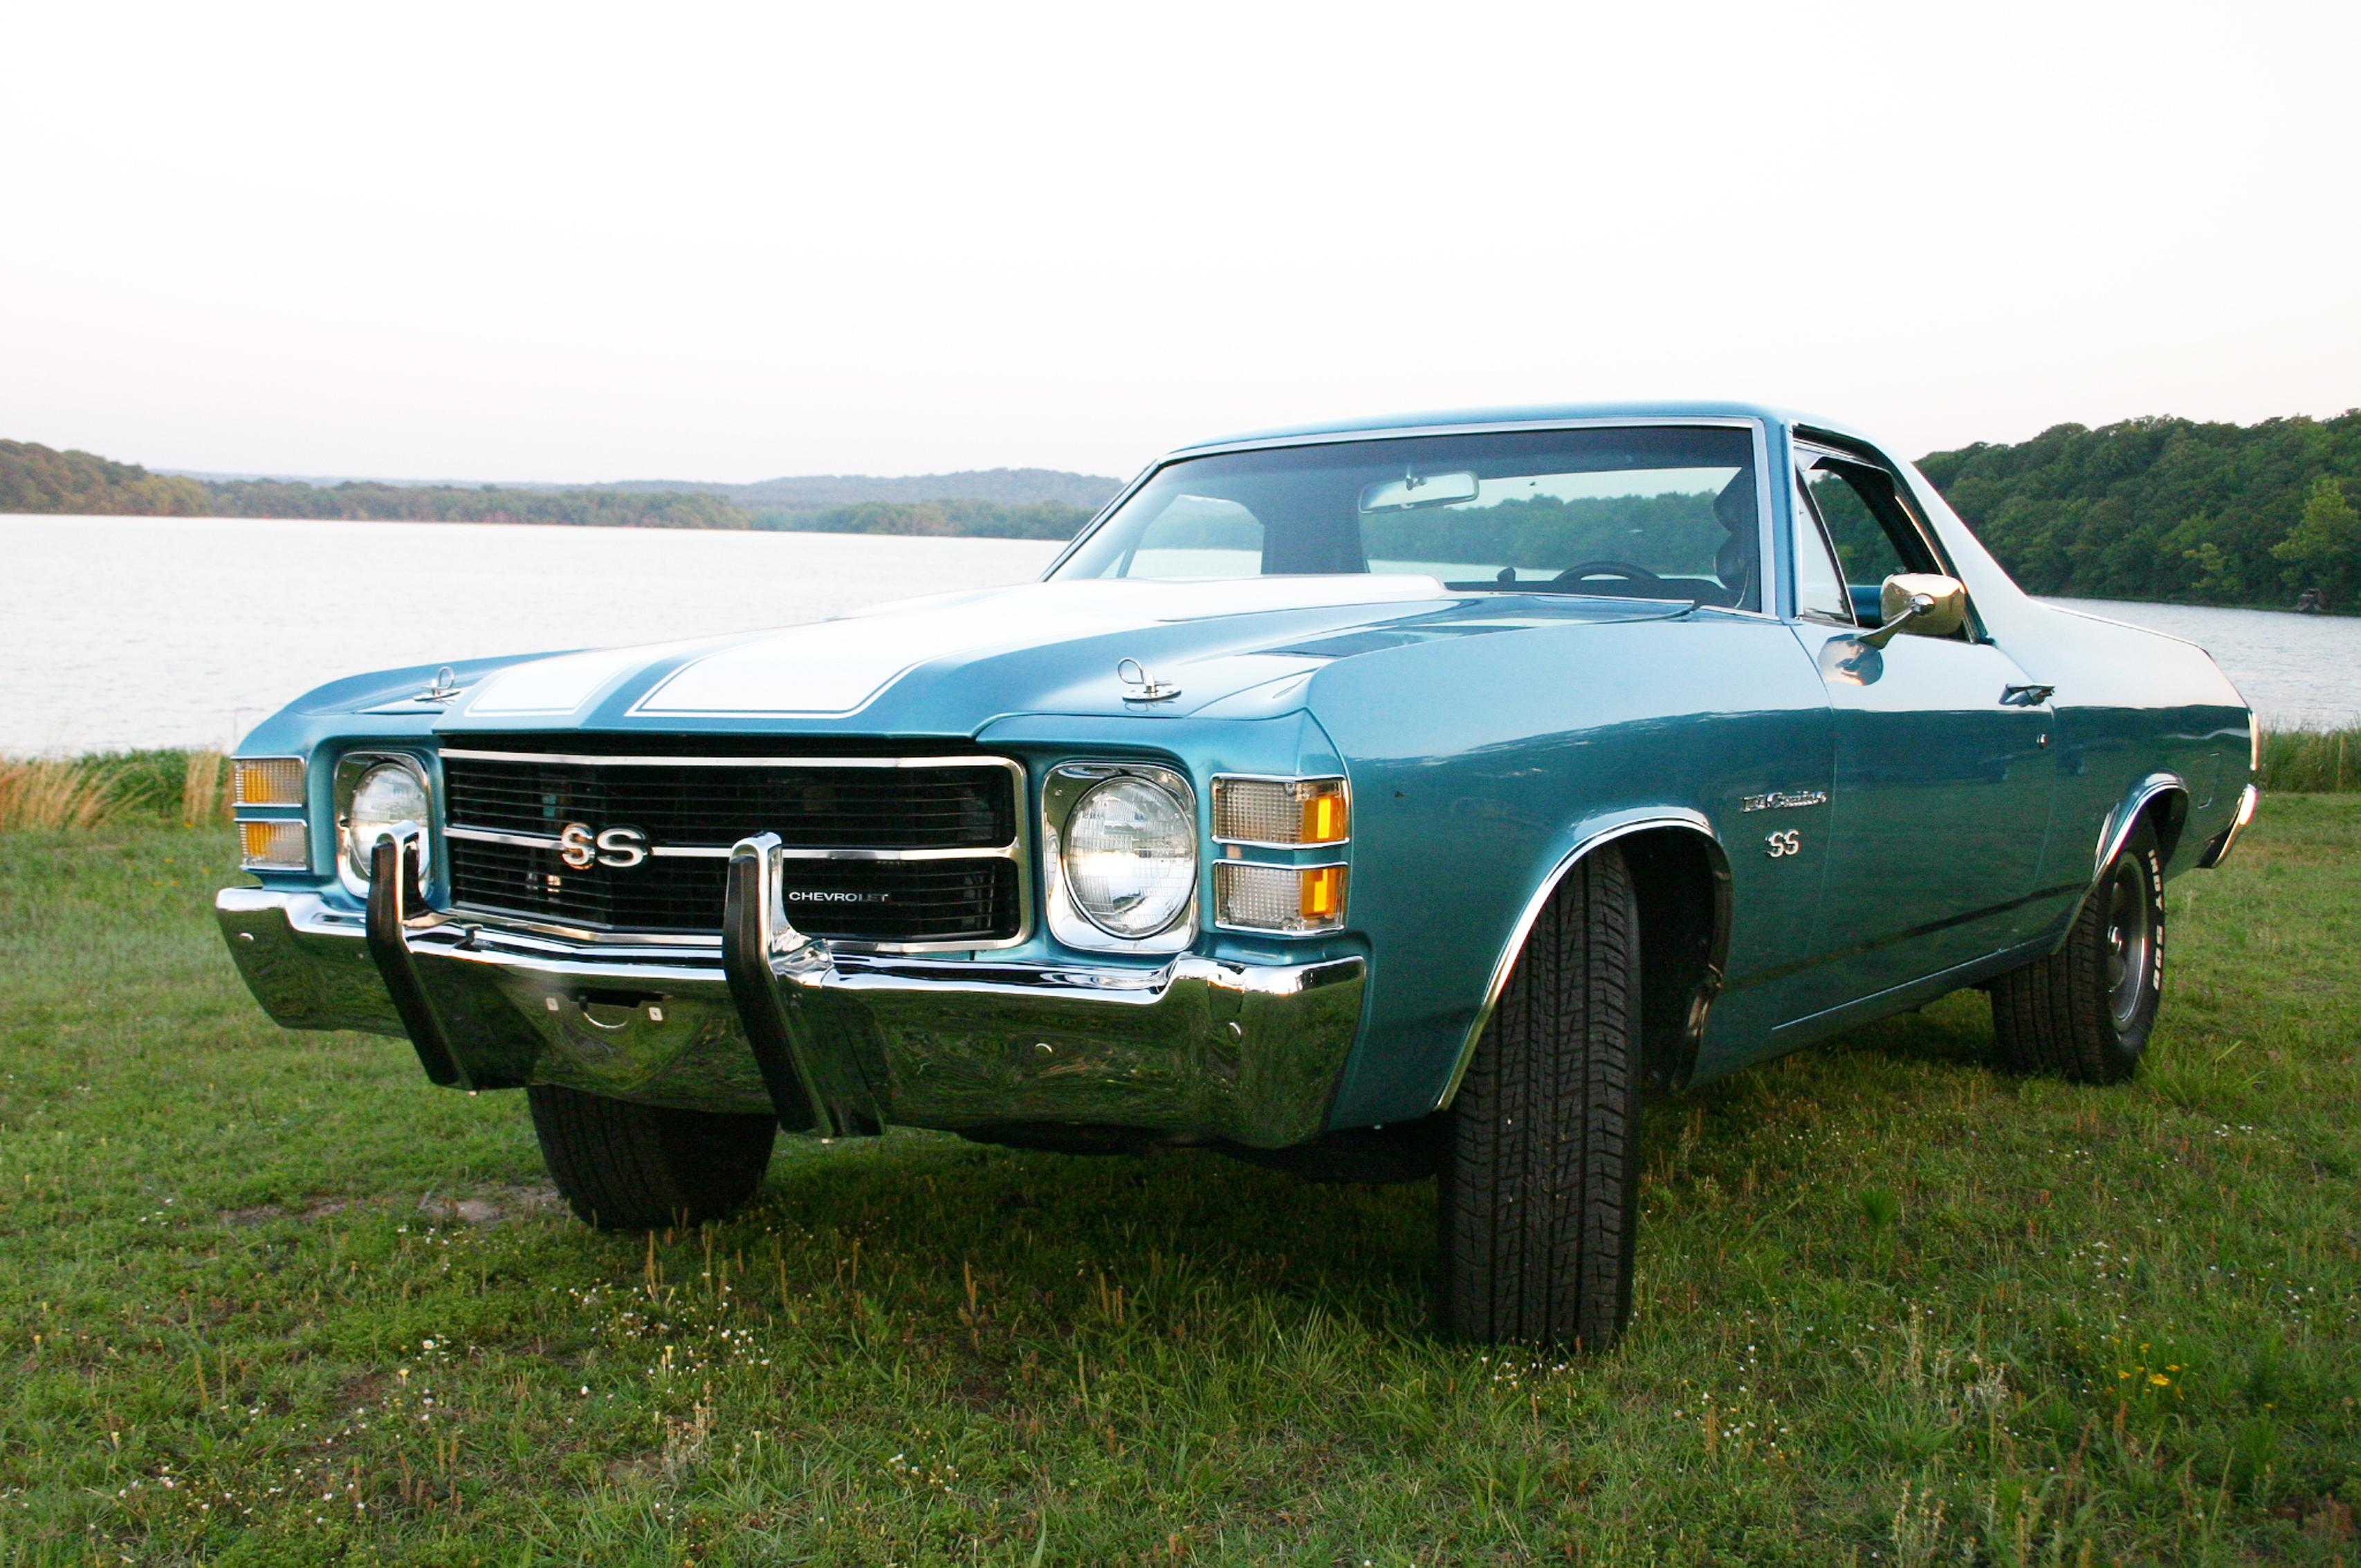 flubyu2 1971 Chevrolet El Camino Specs Photos Modification Info